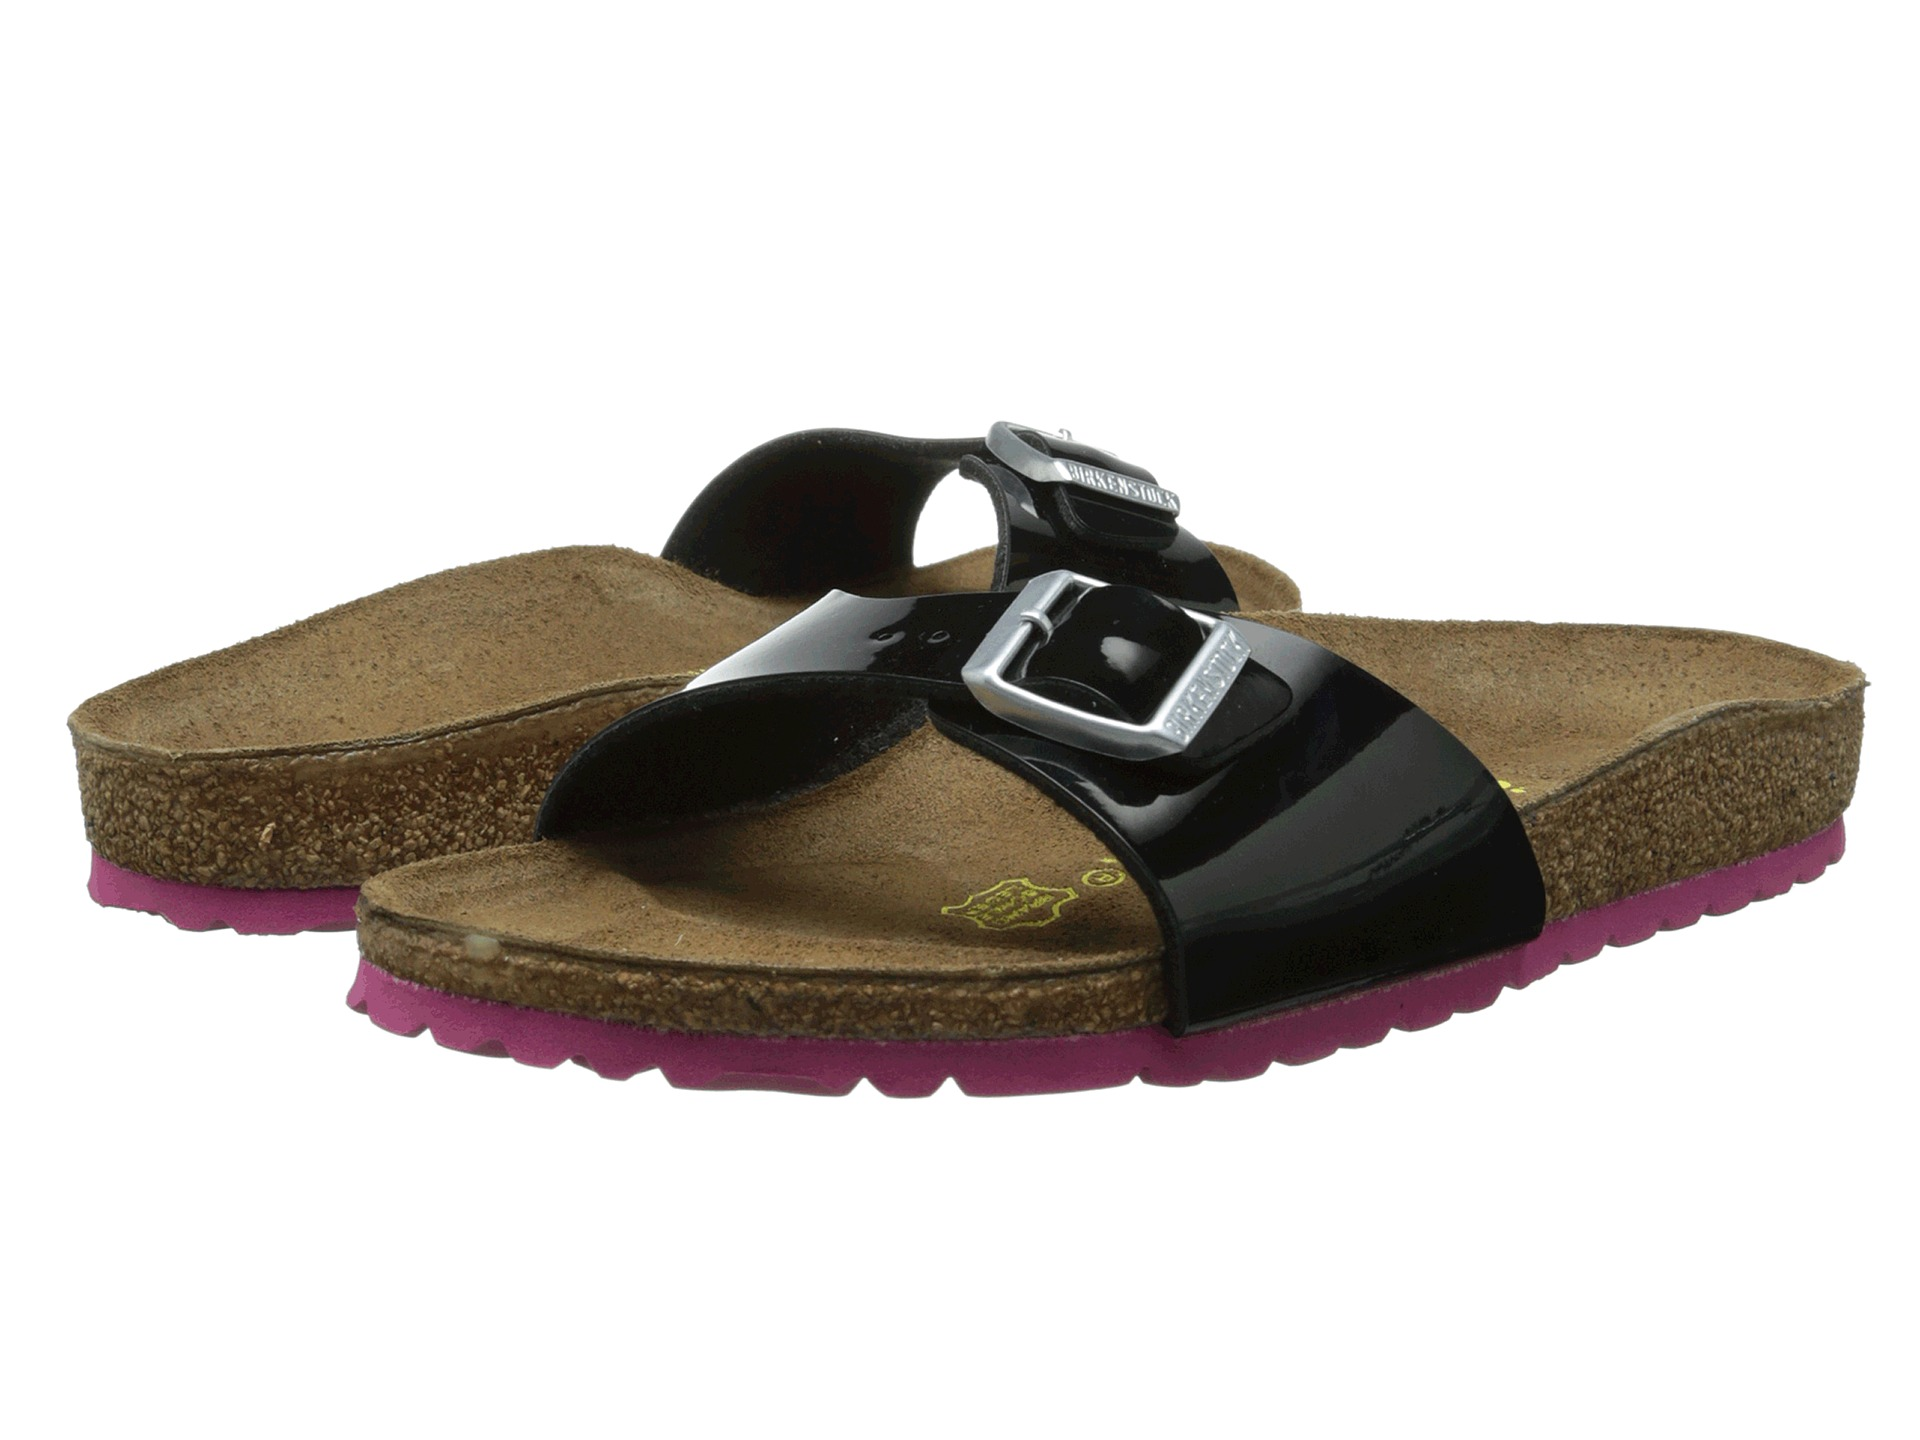 Luxury The Only Way Ill Wear A NonBirkenstock Pair Of Shoes Is If A Friend Gets Married  Footbed Versions  Just Hose Them Off And Youre Good To Go Unlike Most Plastic Shoes, There Arent Any Sharp Edges Or Seams To Cut Into Your Feet, And